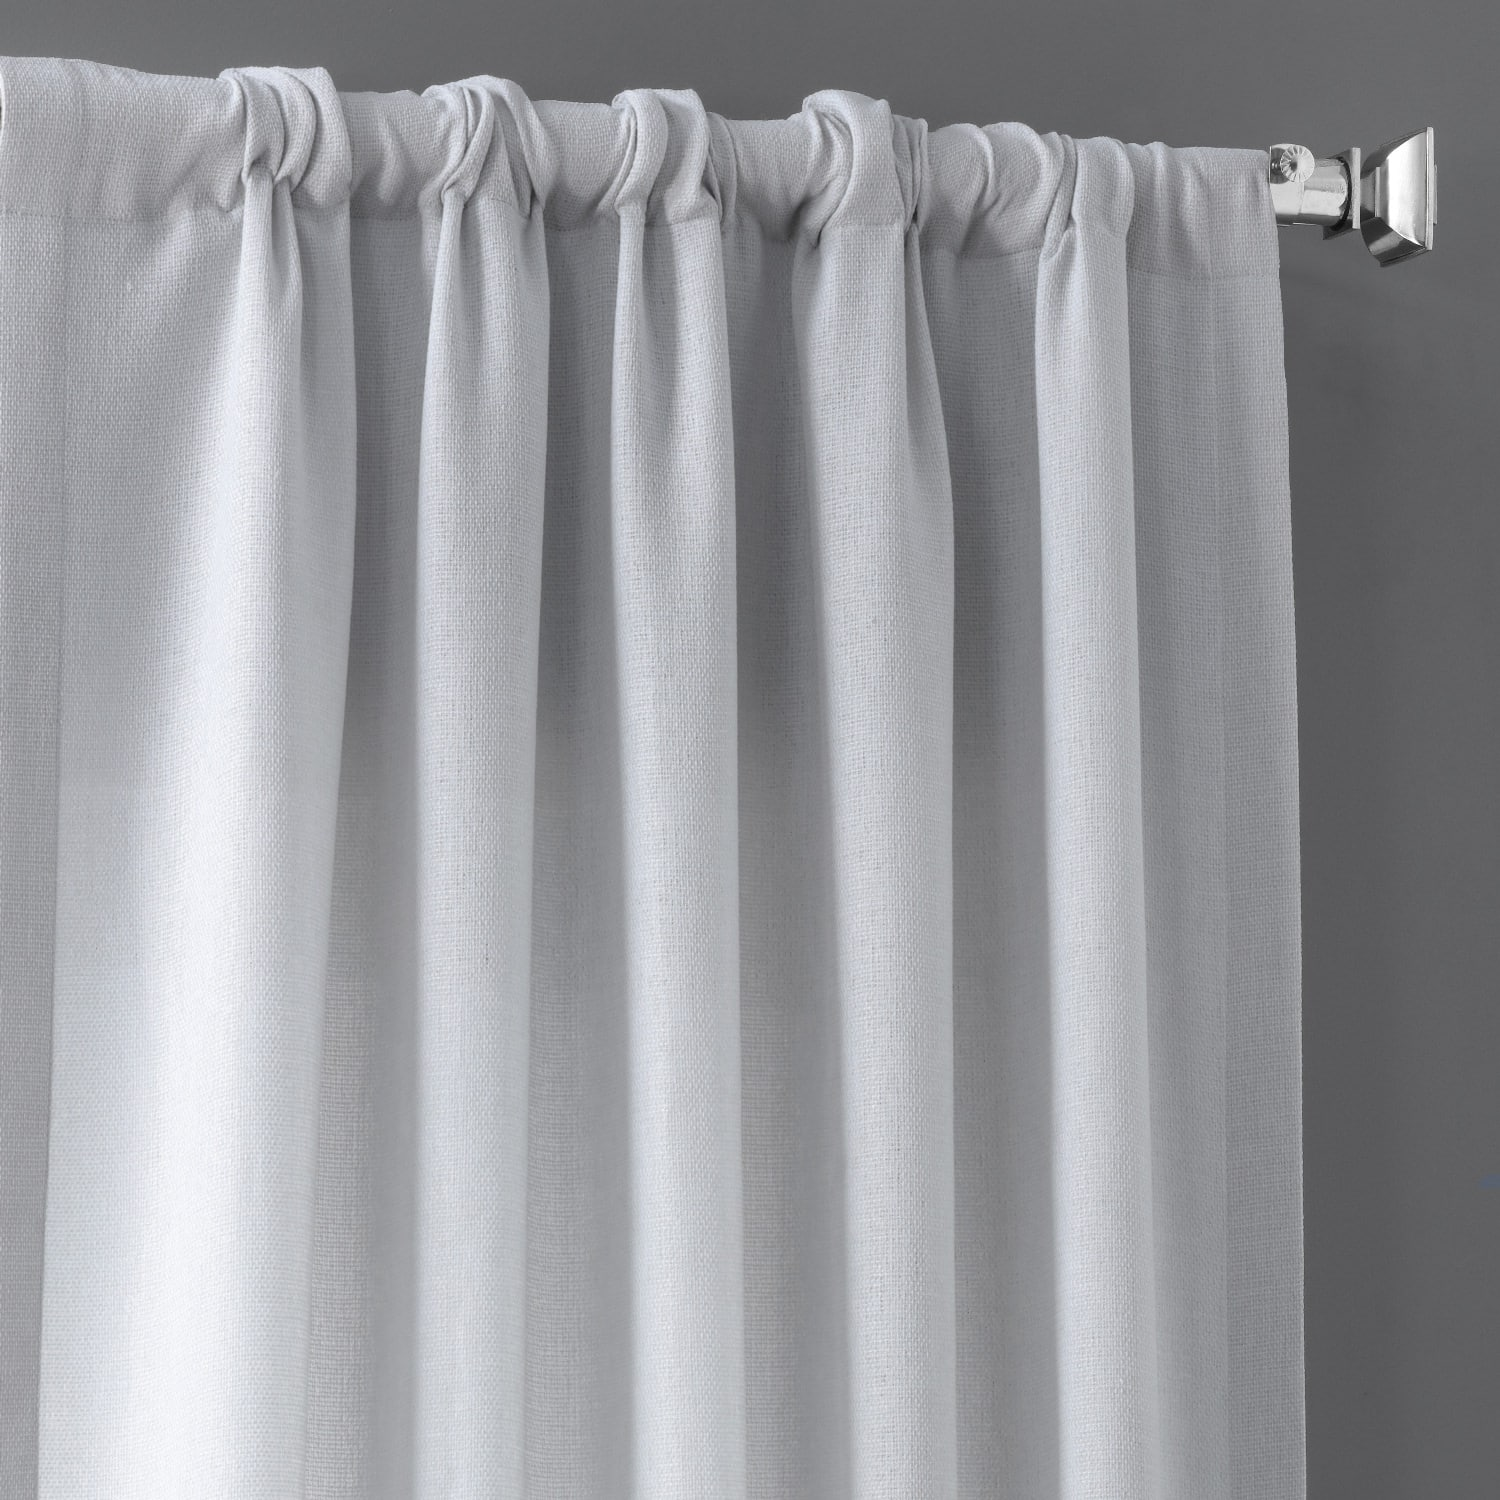 Polar Grey Faux Linen Sheer Curtain